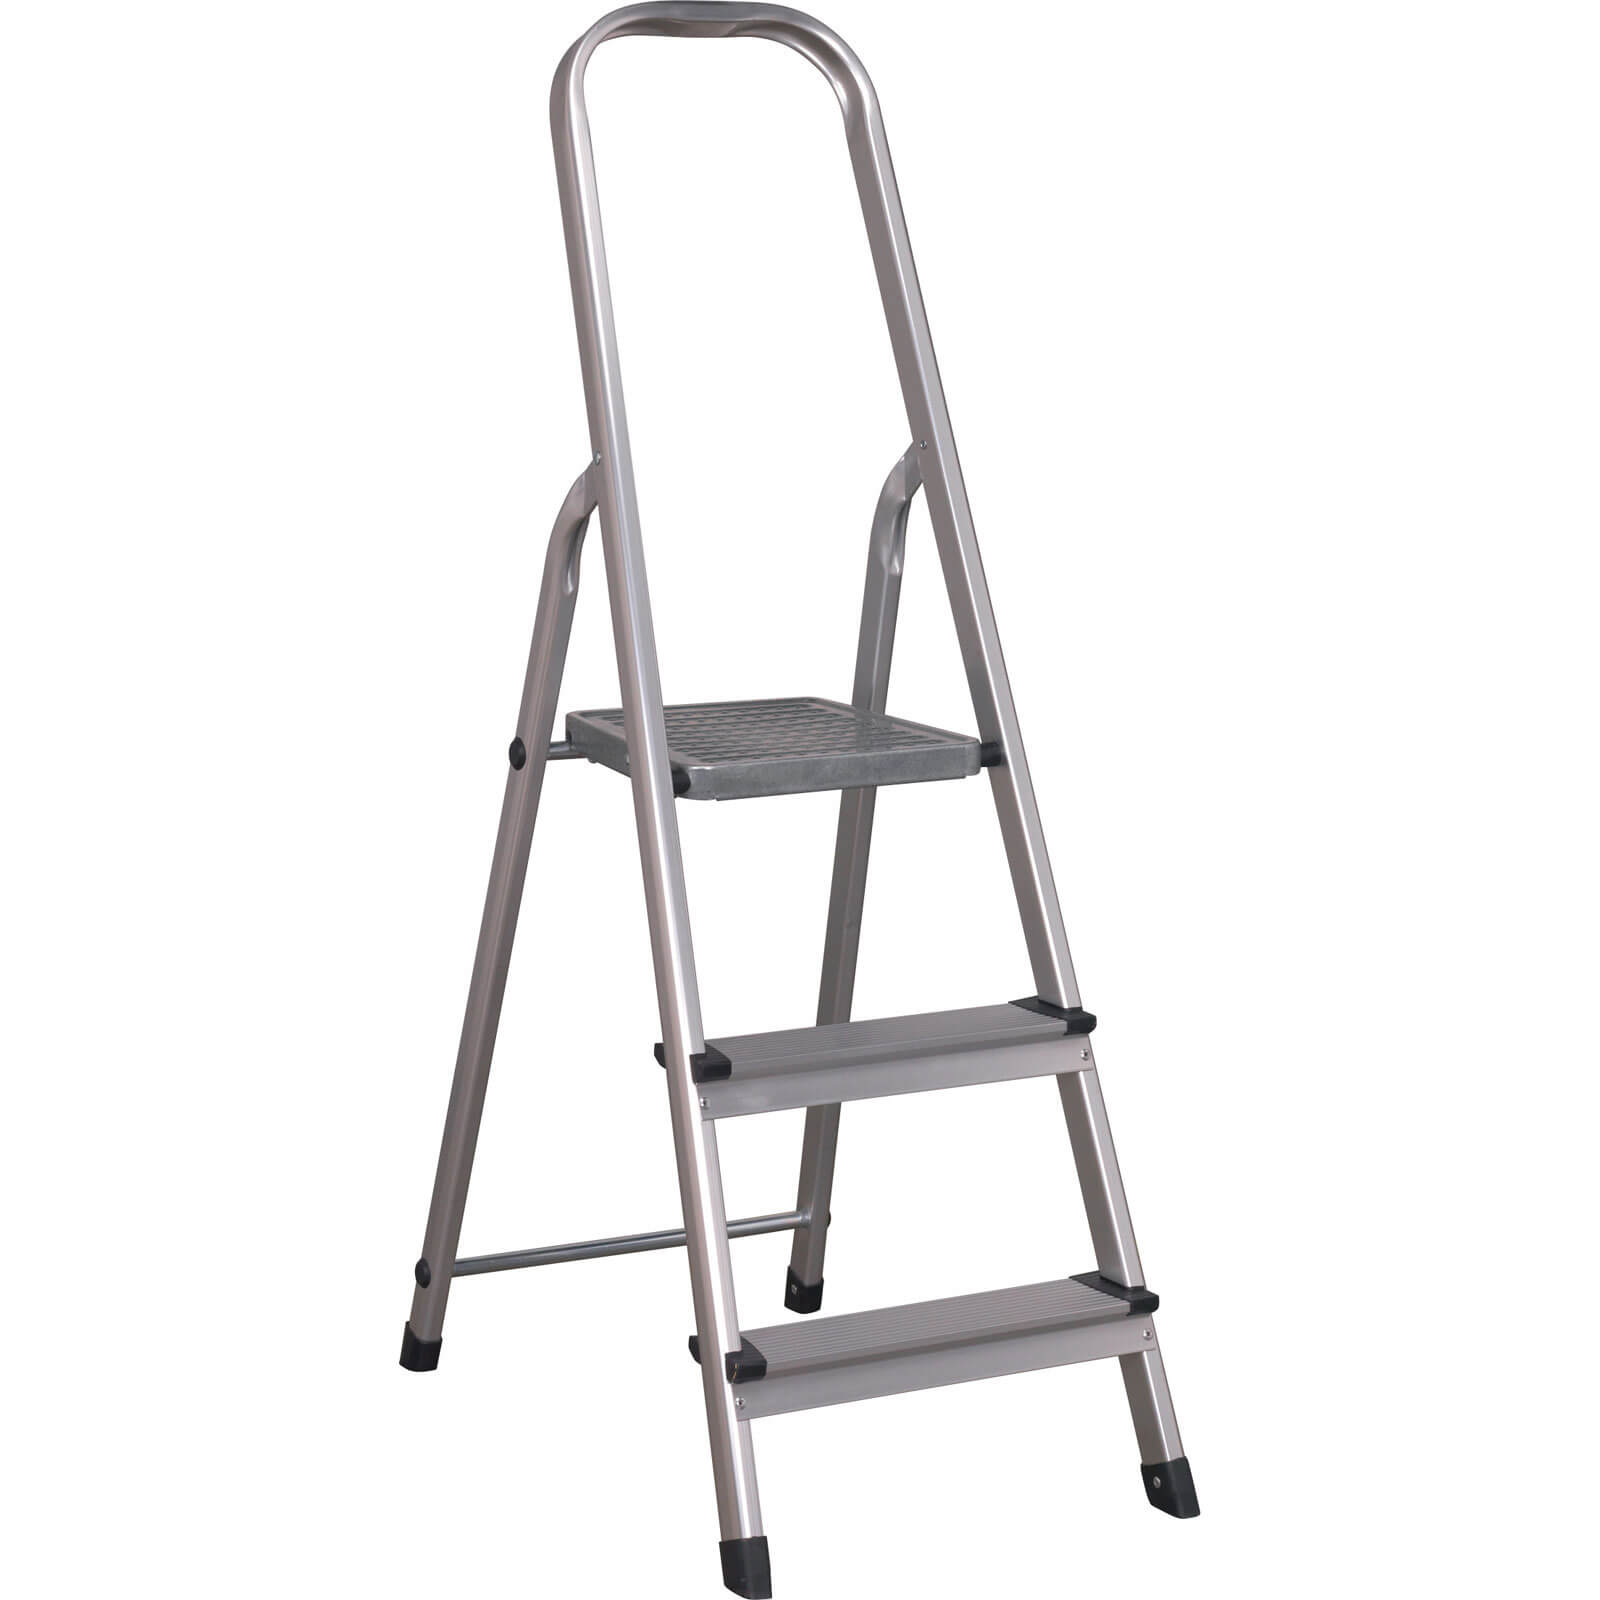 Sealey Trade Aluminium Platform Step Ladder 3